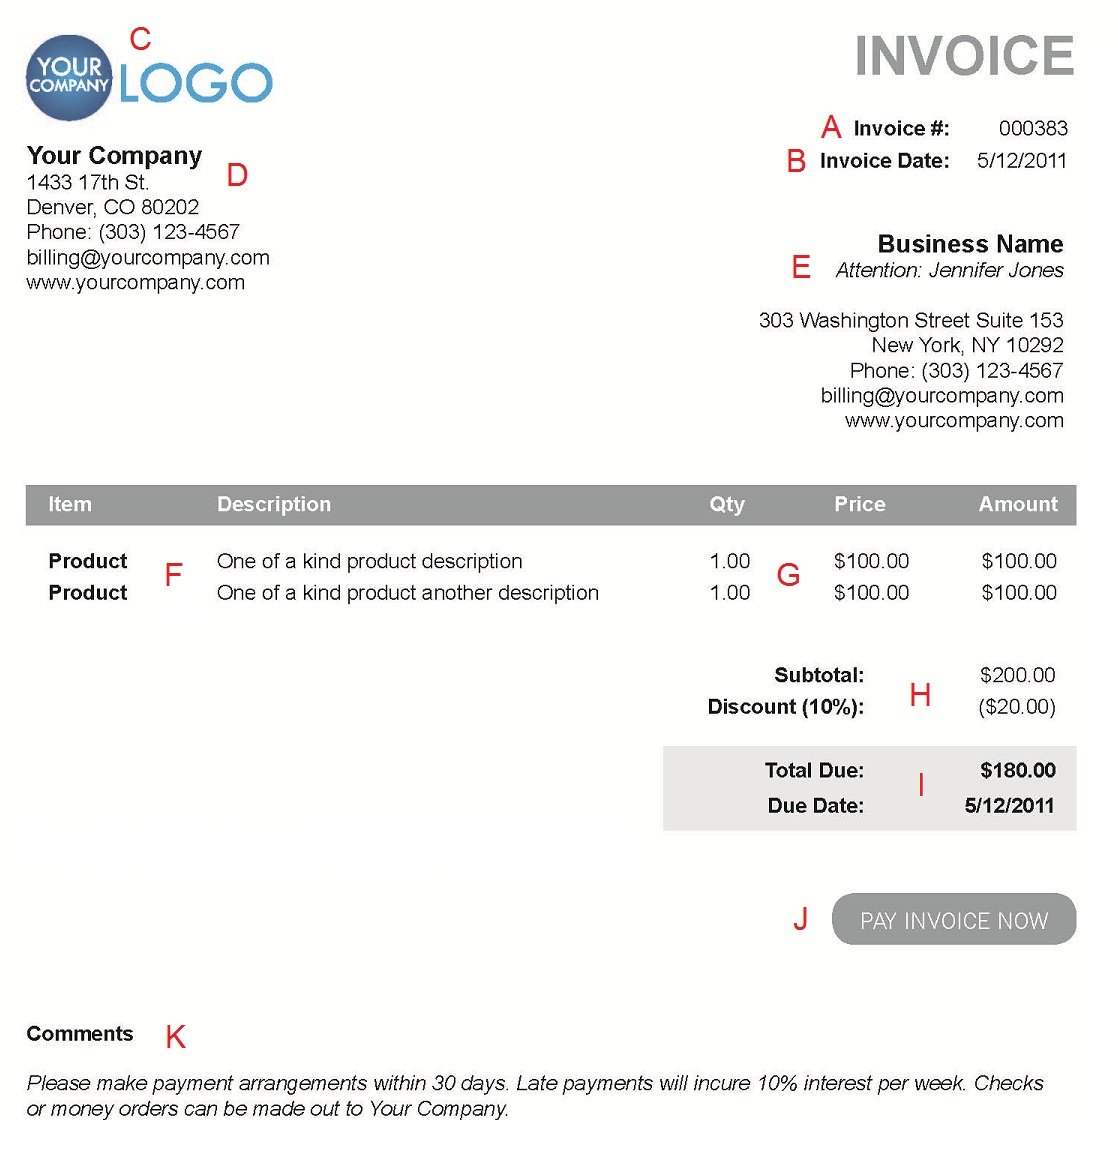 Soulfulpowerus  Unique The  Different Sections Of An Electronic Payment Invoice With Marvelous A  With Nice Star Tsp Eco Receipt Printer Also Us Postal Service Return Receipt In Addition Taxi Receipt Image And Receipts App Android As Well As Guacamole Receipt Additionally Receipt Organizing Software From Paysimplecom With Soulfulpowerus  Marvelous The  Different Sections Of An Electronic Payment Invoice With Nice A  And Unique Star Tsp Eco Receipt Printer Also Us Postal Service Return Receipt In Addition Taxi Receipt Image From Paysimplecom